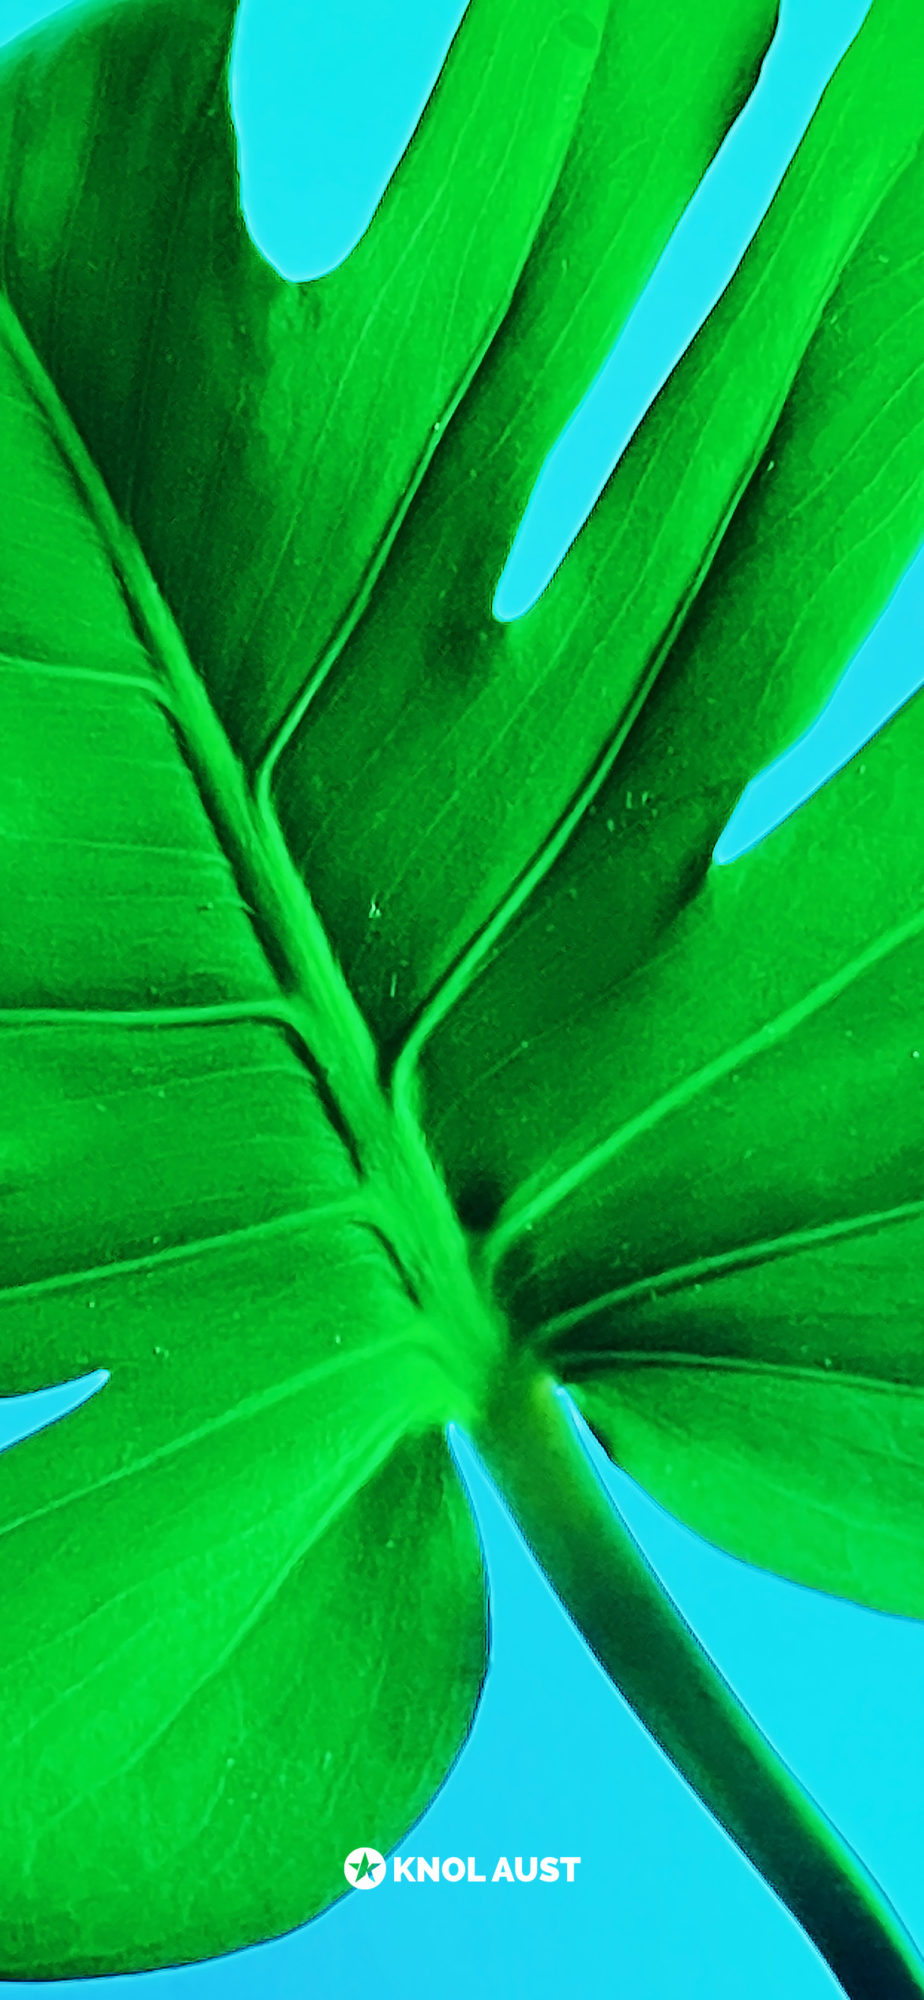 Photo of a monstera delicosa with a cyan background made for smartphone devices